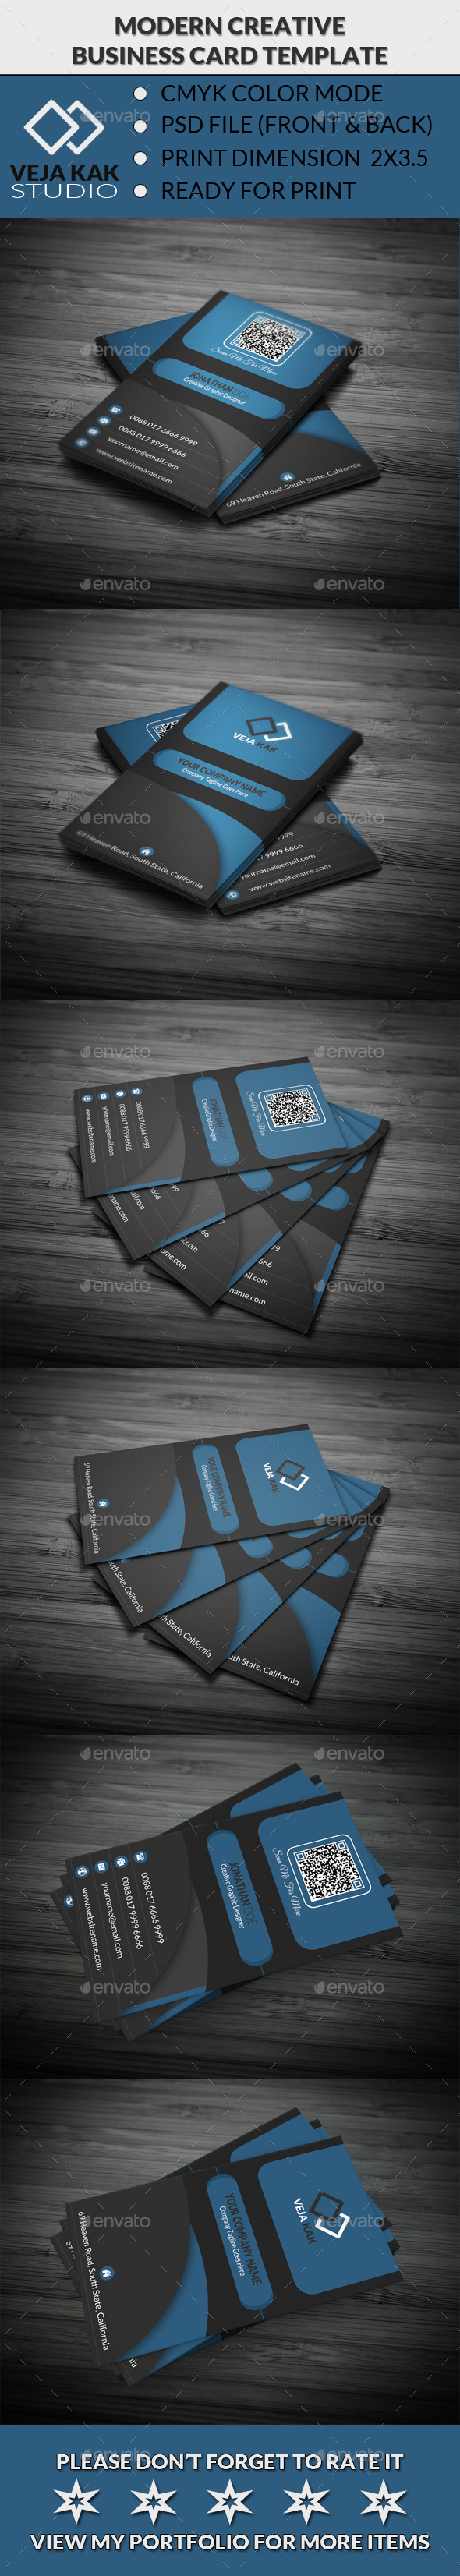 GraphicRiver Modern Creative Business Card 10961599